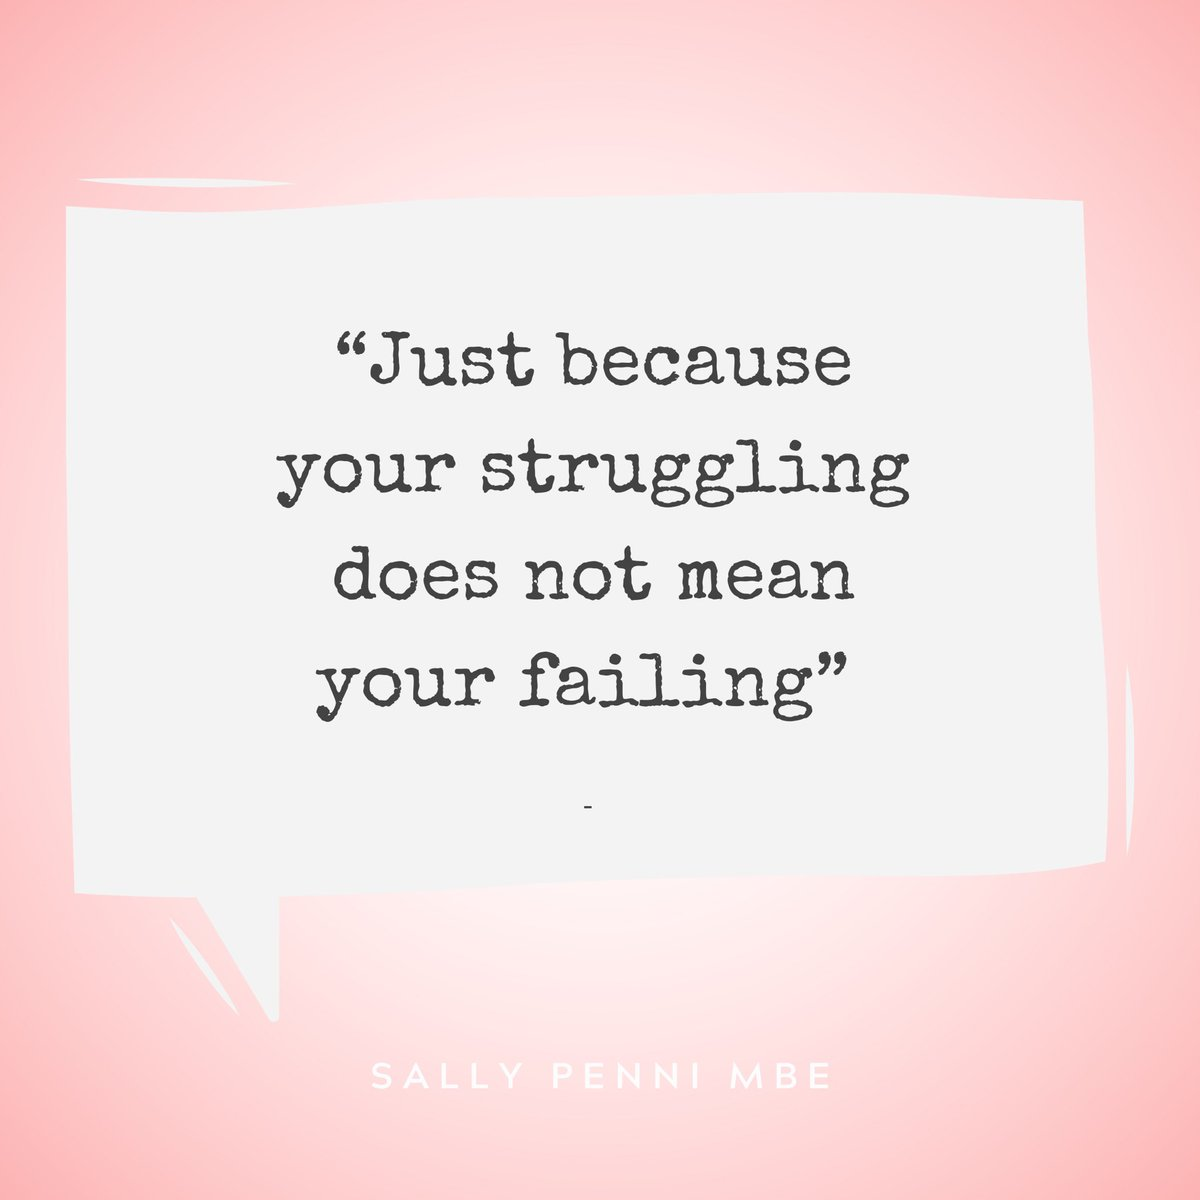 You will come out the other side feeling so much better and appreciate it more. 😊  #sallypennimbe #law #lawyer #lifeofalawyer #barrister #author #quoteoftheday #quote #believeinyourself #selflove #success #makeadifference #bekind #kindness #struggling #comeouttheotherside